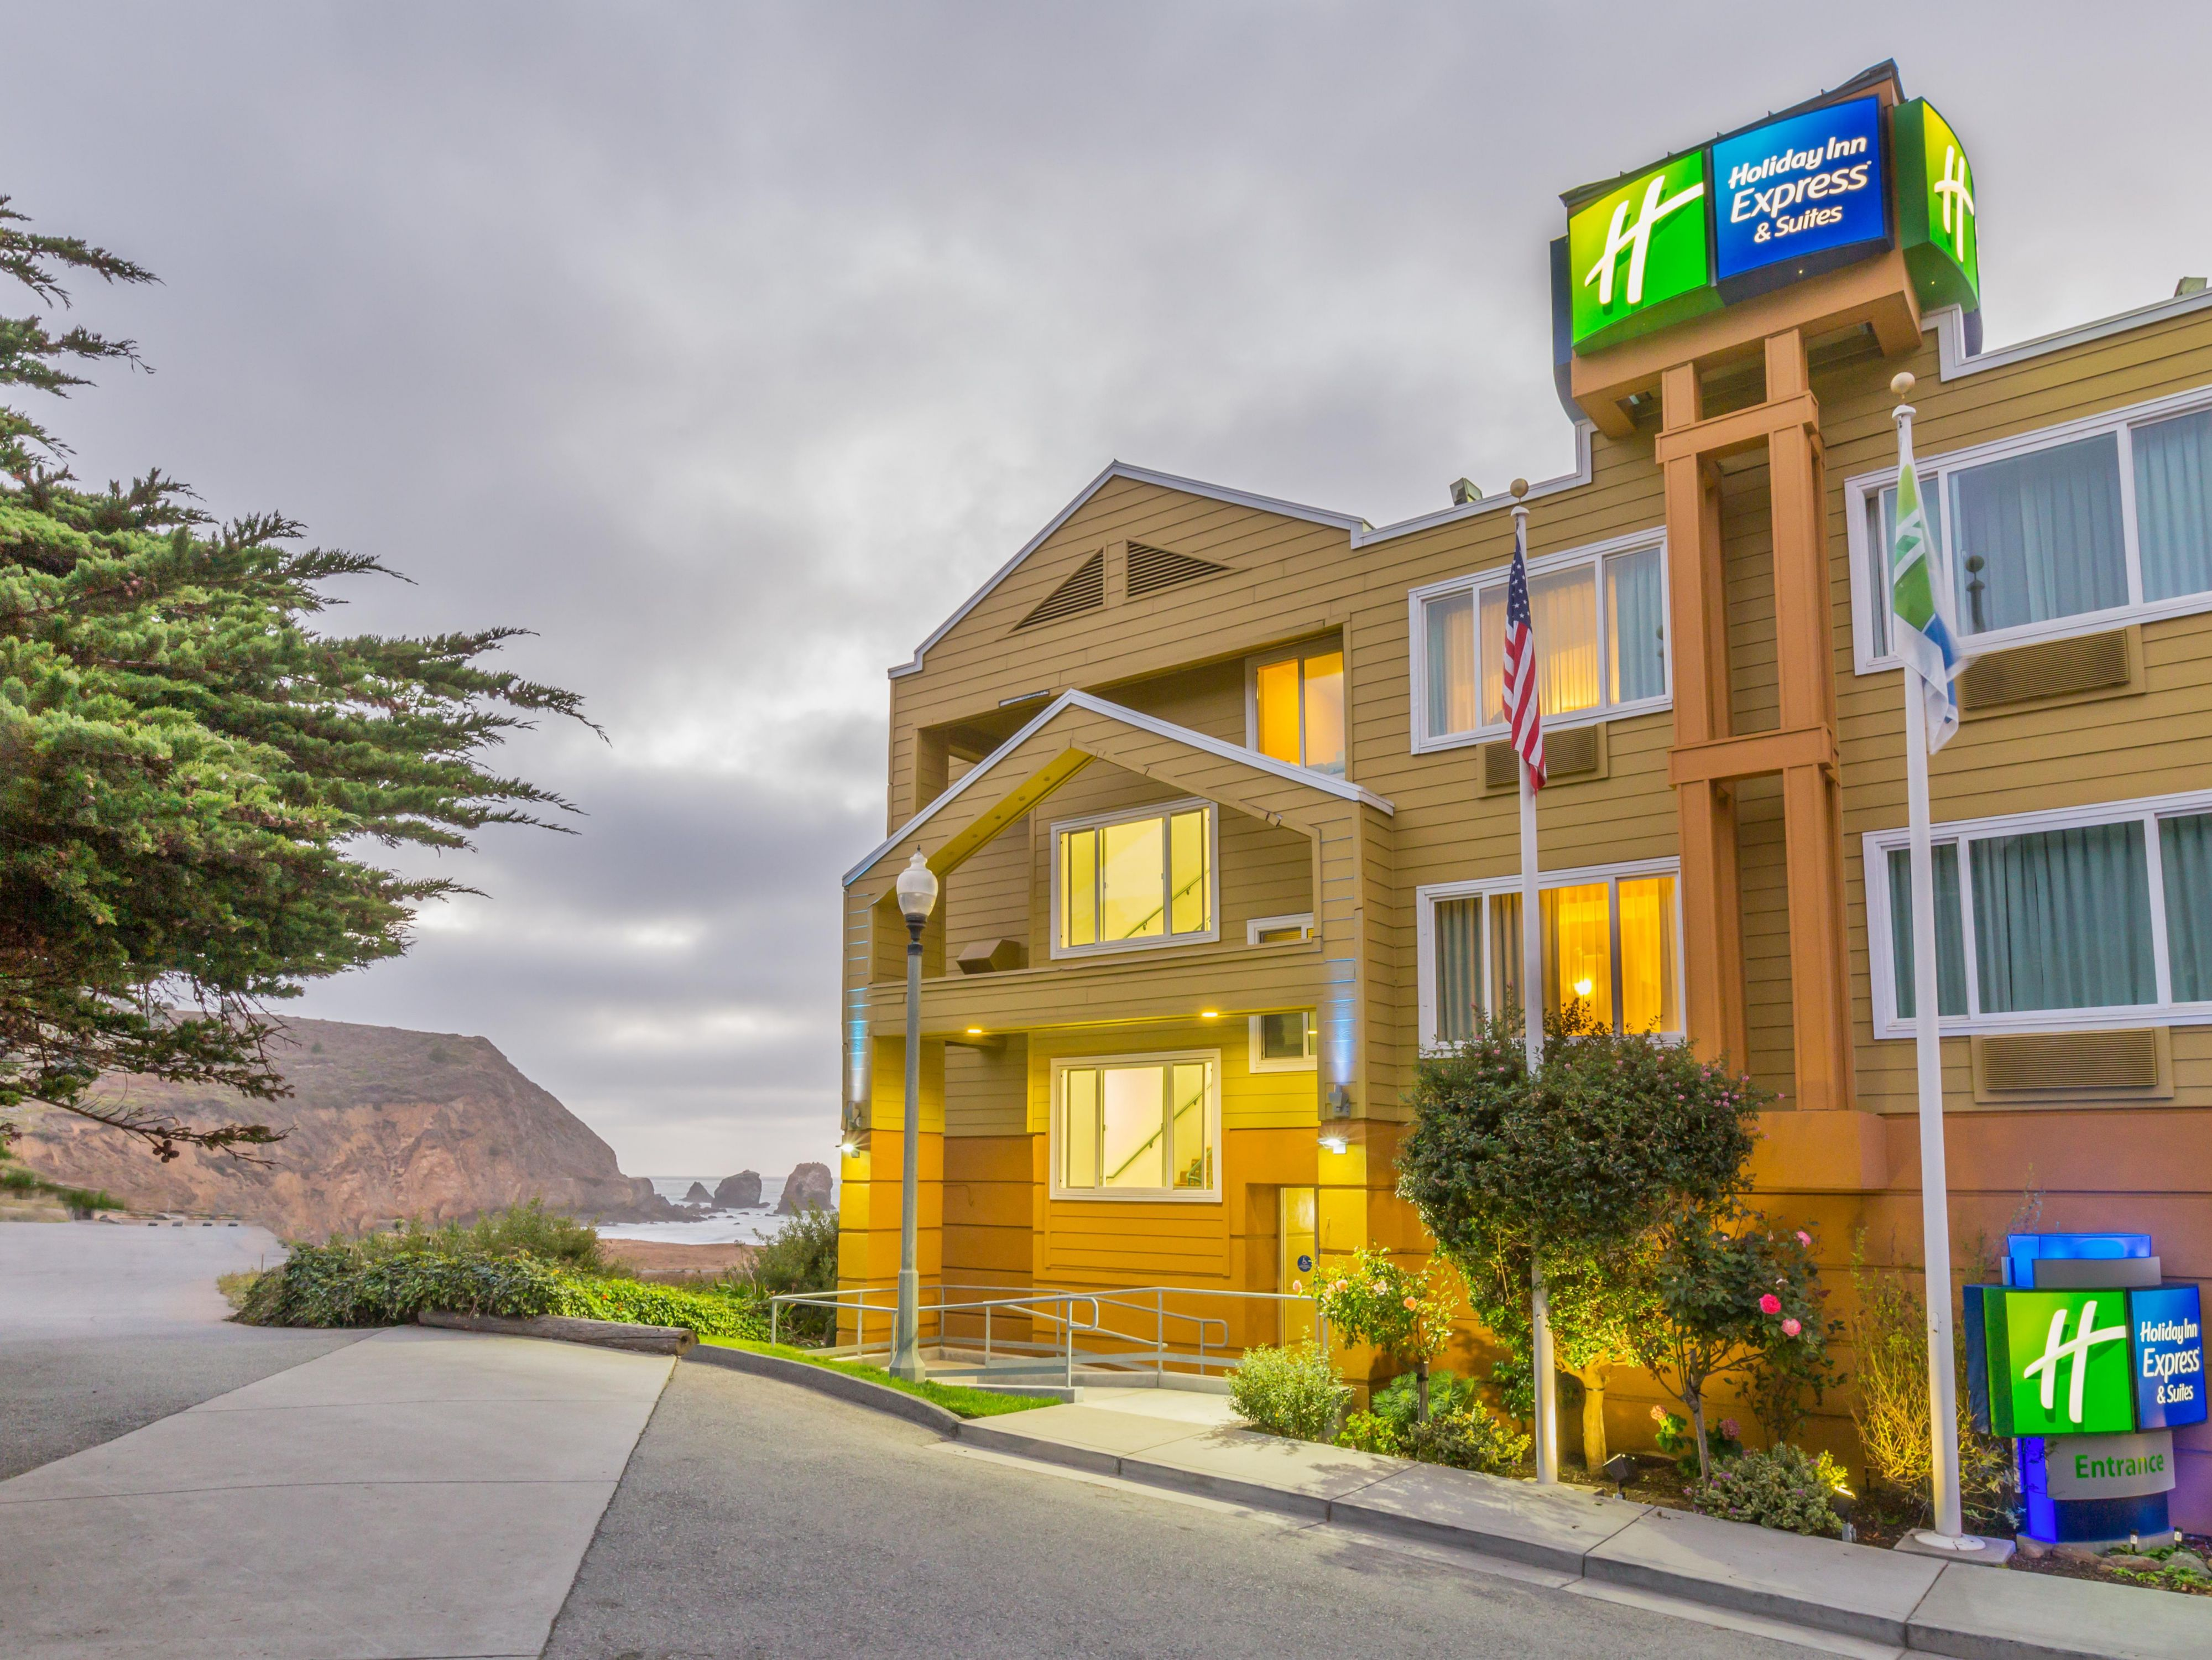 Holiday Inn Express and Suites Pacifica in the evening